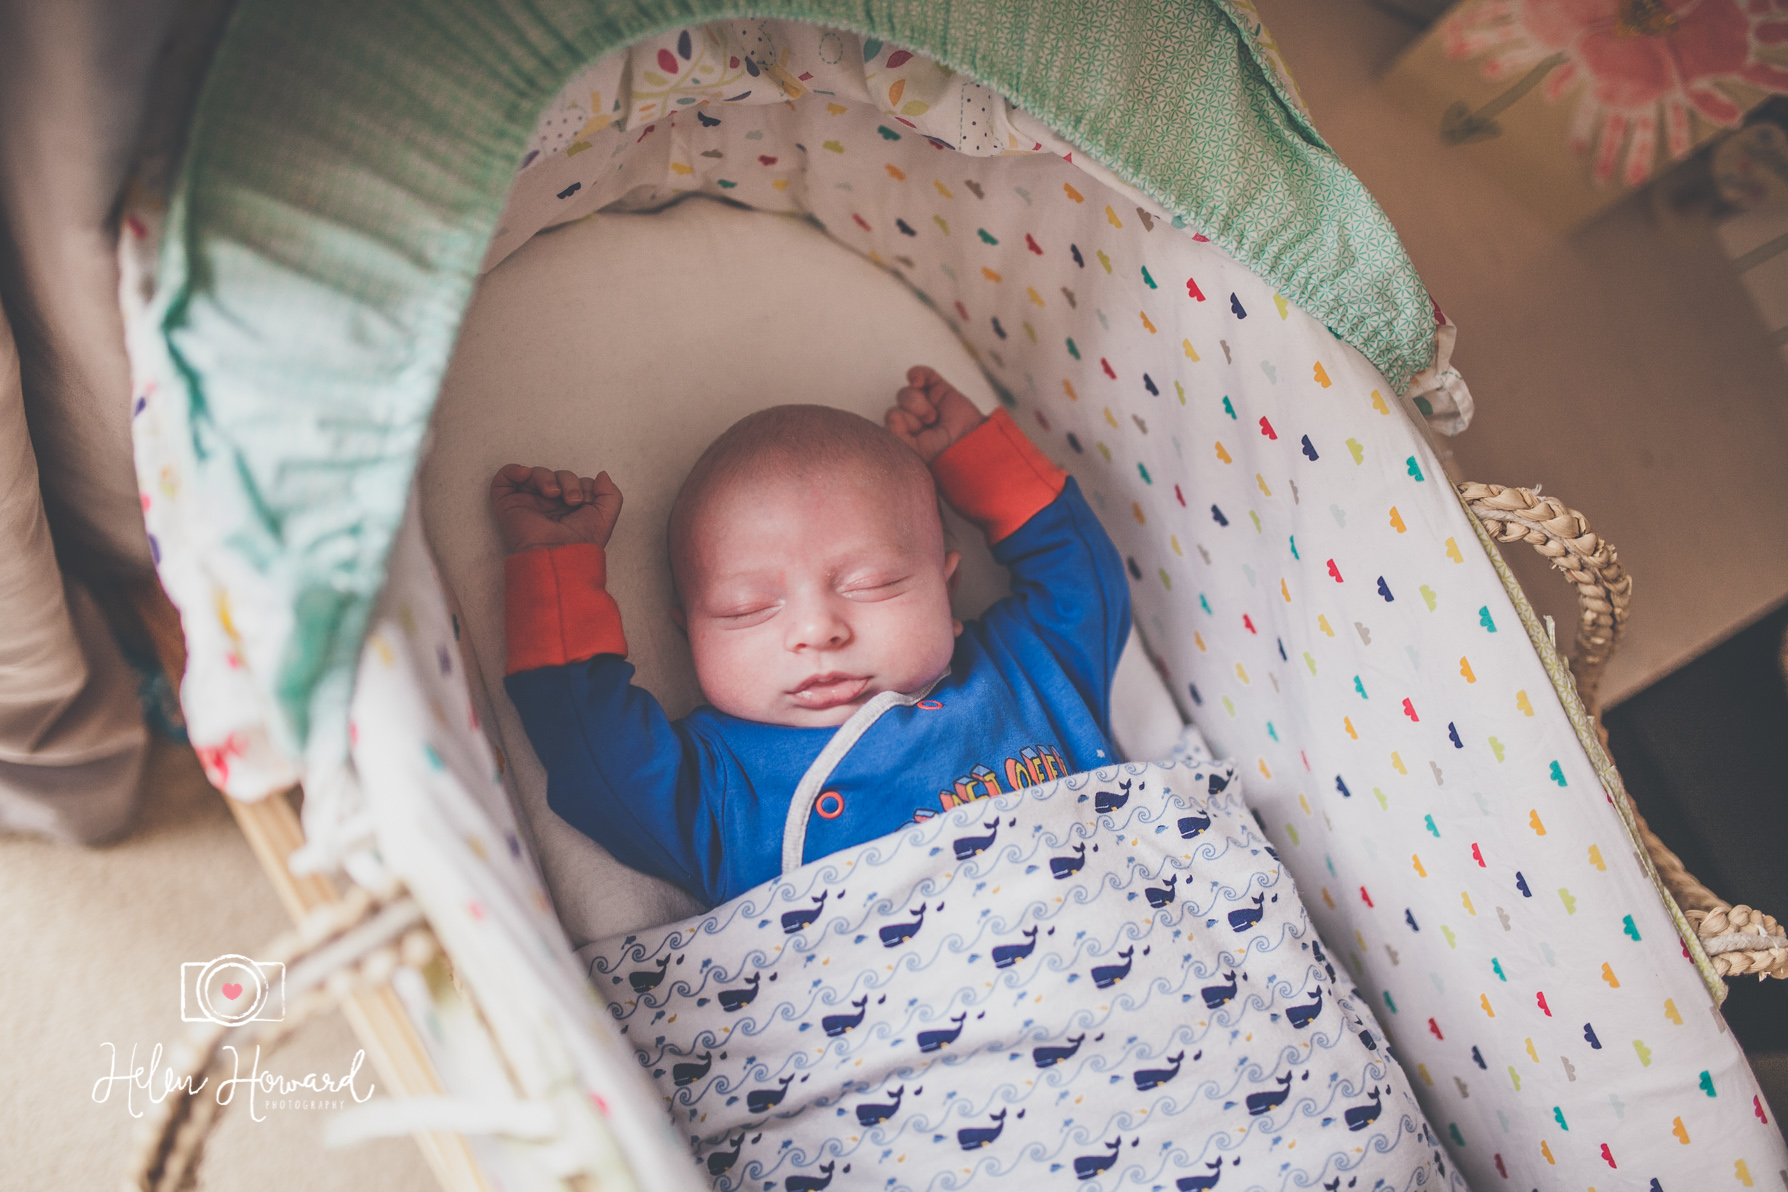 A sleeping newborn baby boy in his moses basket